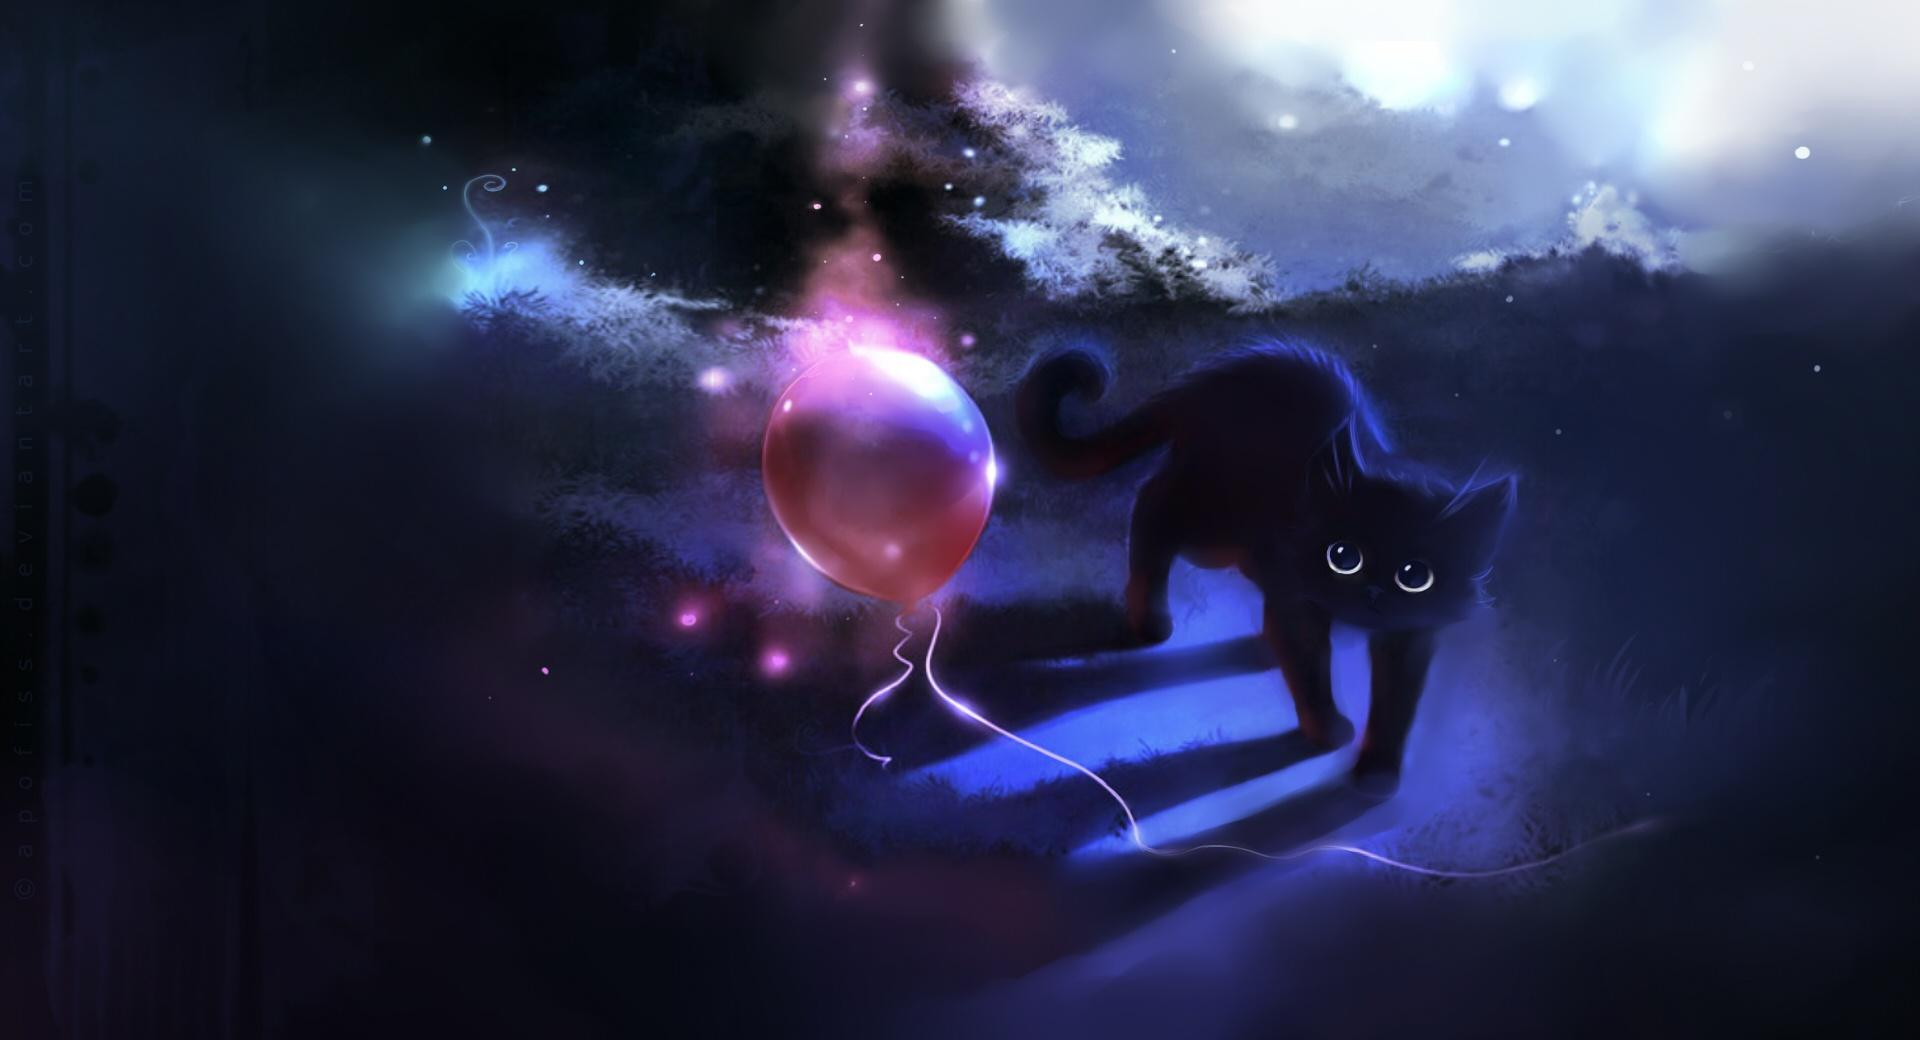 Black Kitty And A Red Balloon wallpapers HD quality